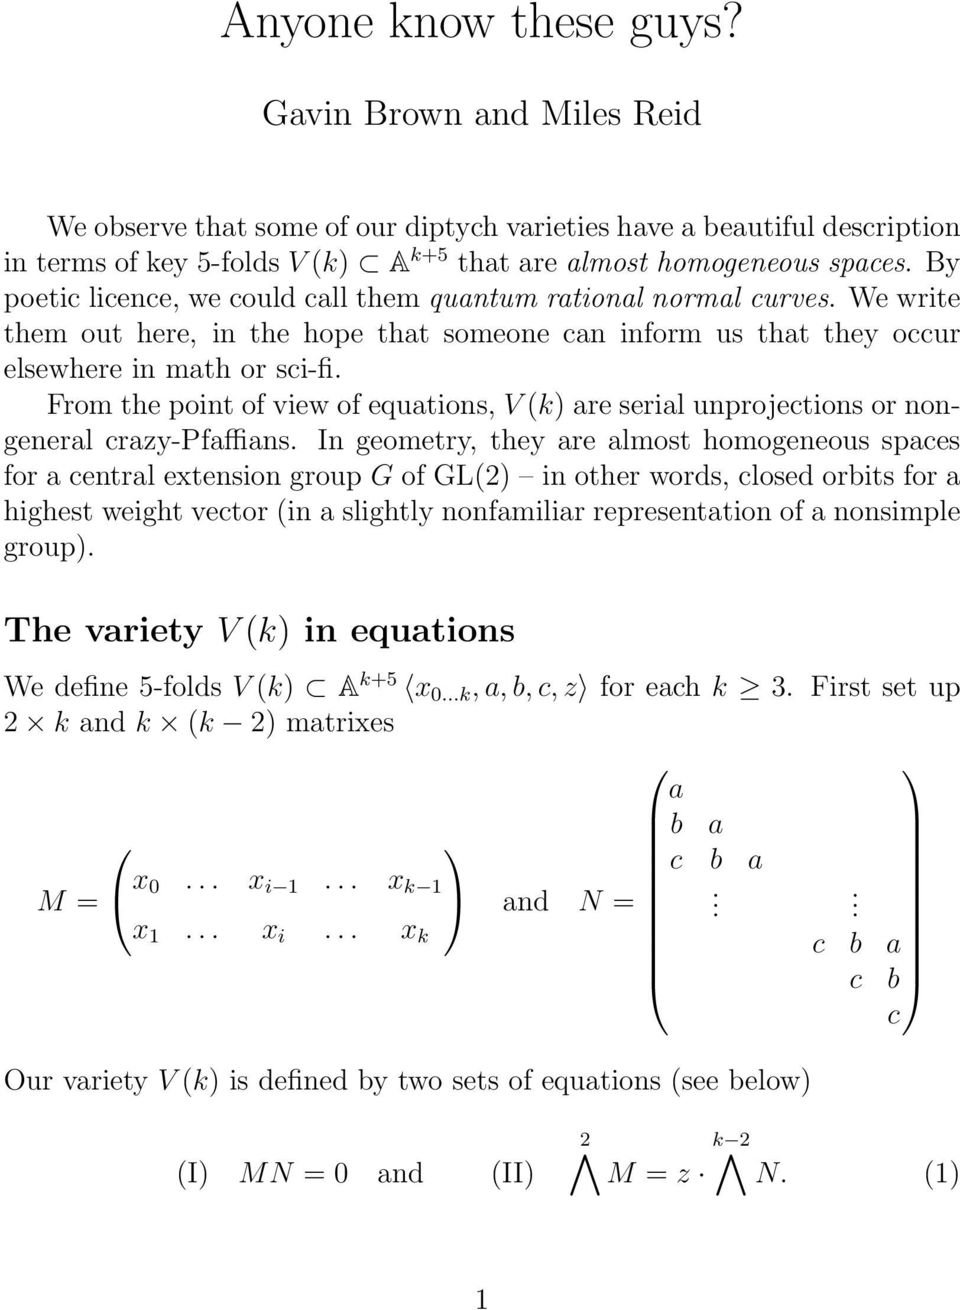 From the point of view of equations, V (k) are serial unprojections or nongeneral crazy-pfaffians.